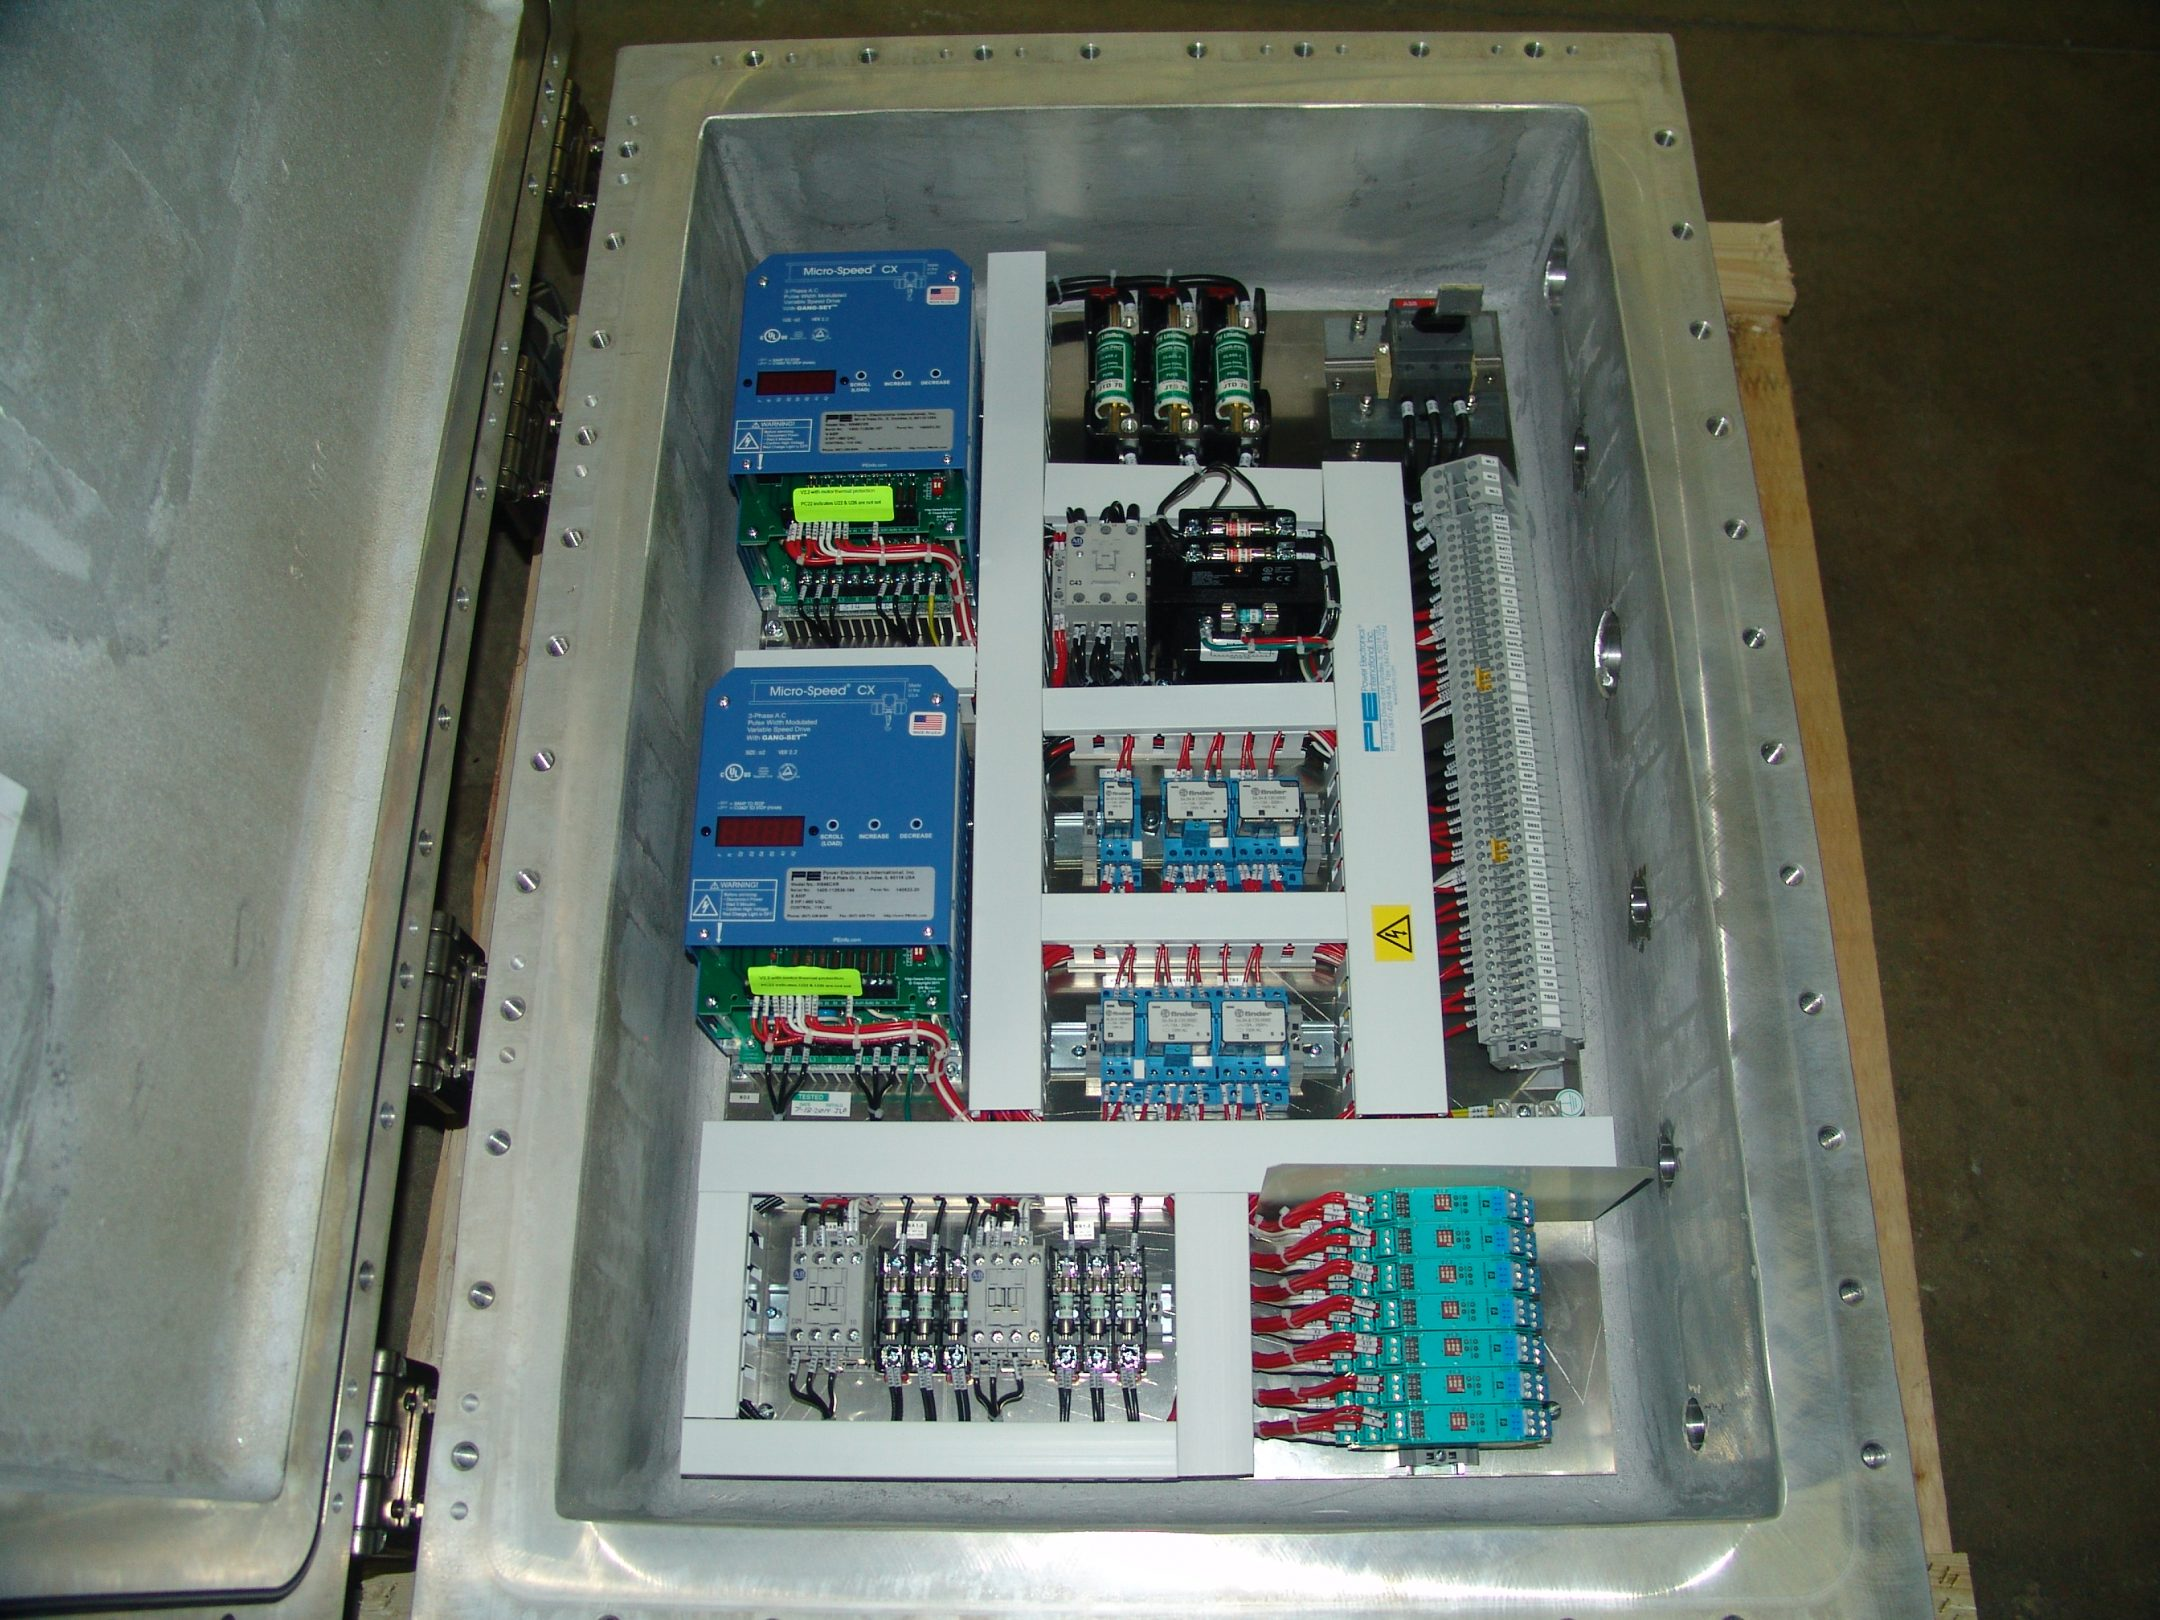 Explosion Proof Nema Type 7 9 Control Panels Power Electronics Wiring Enclosure Common Upgrade Options